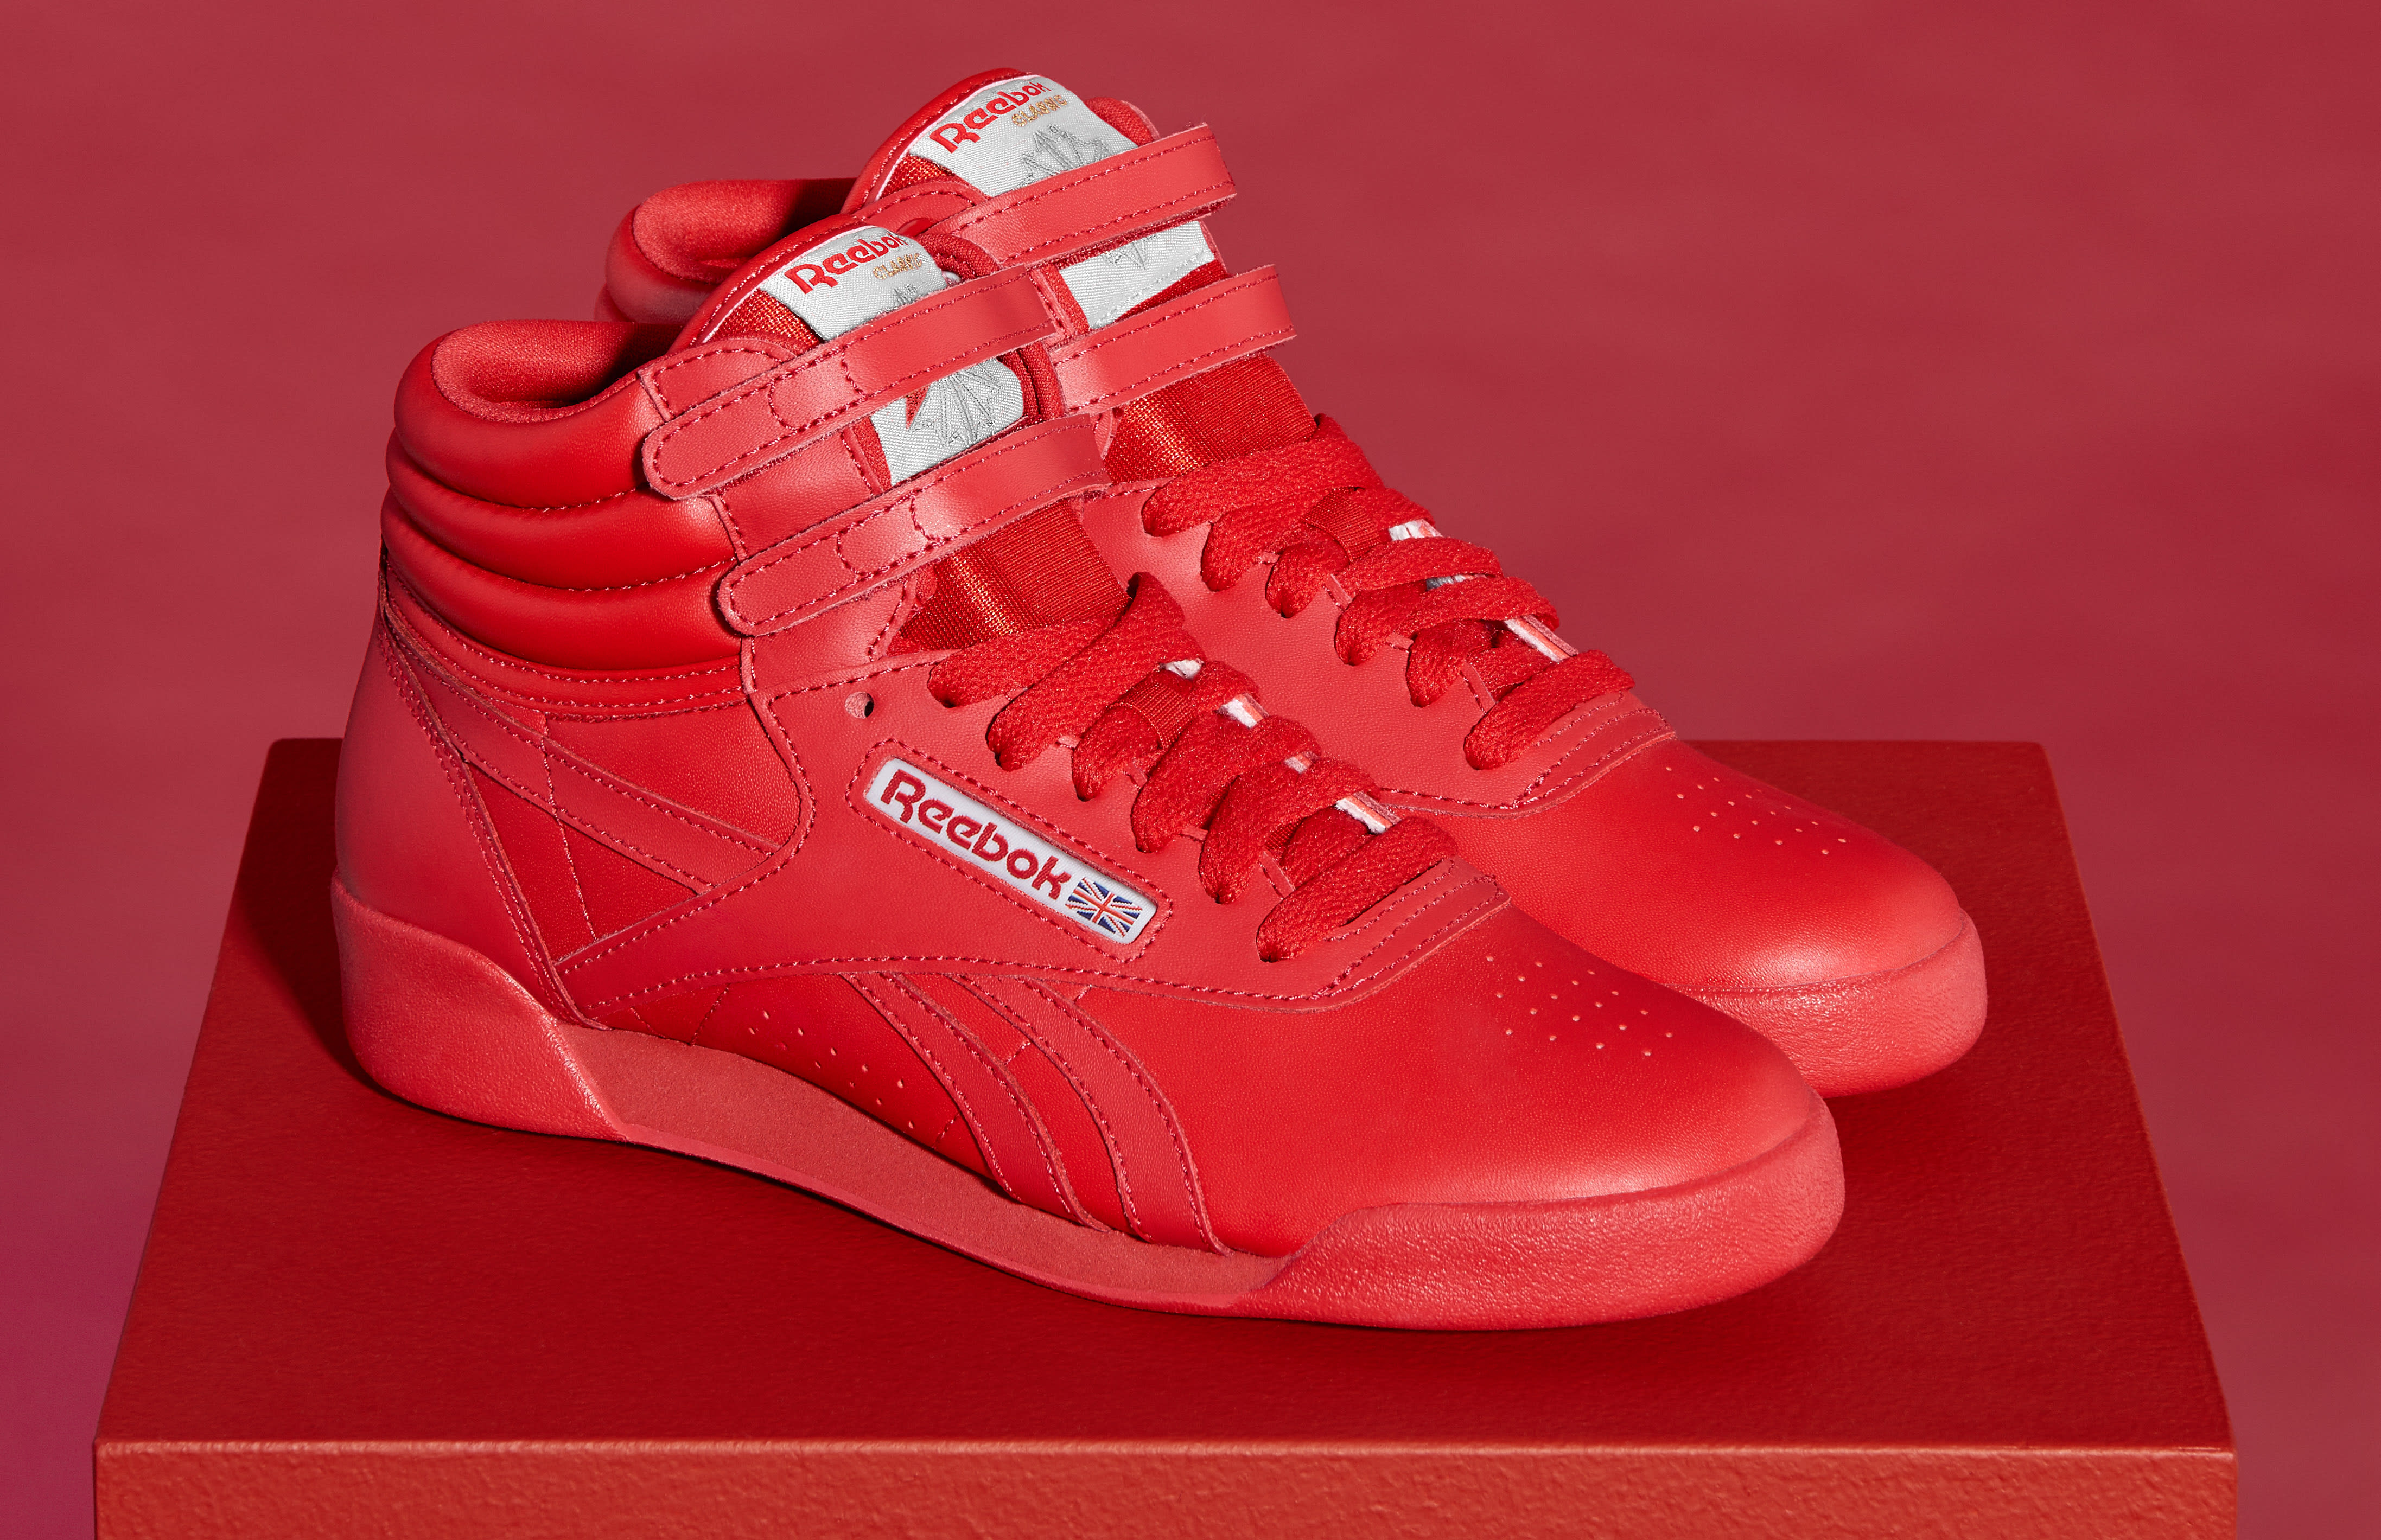 Reebok Freestyle Red